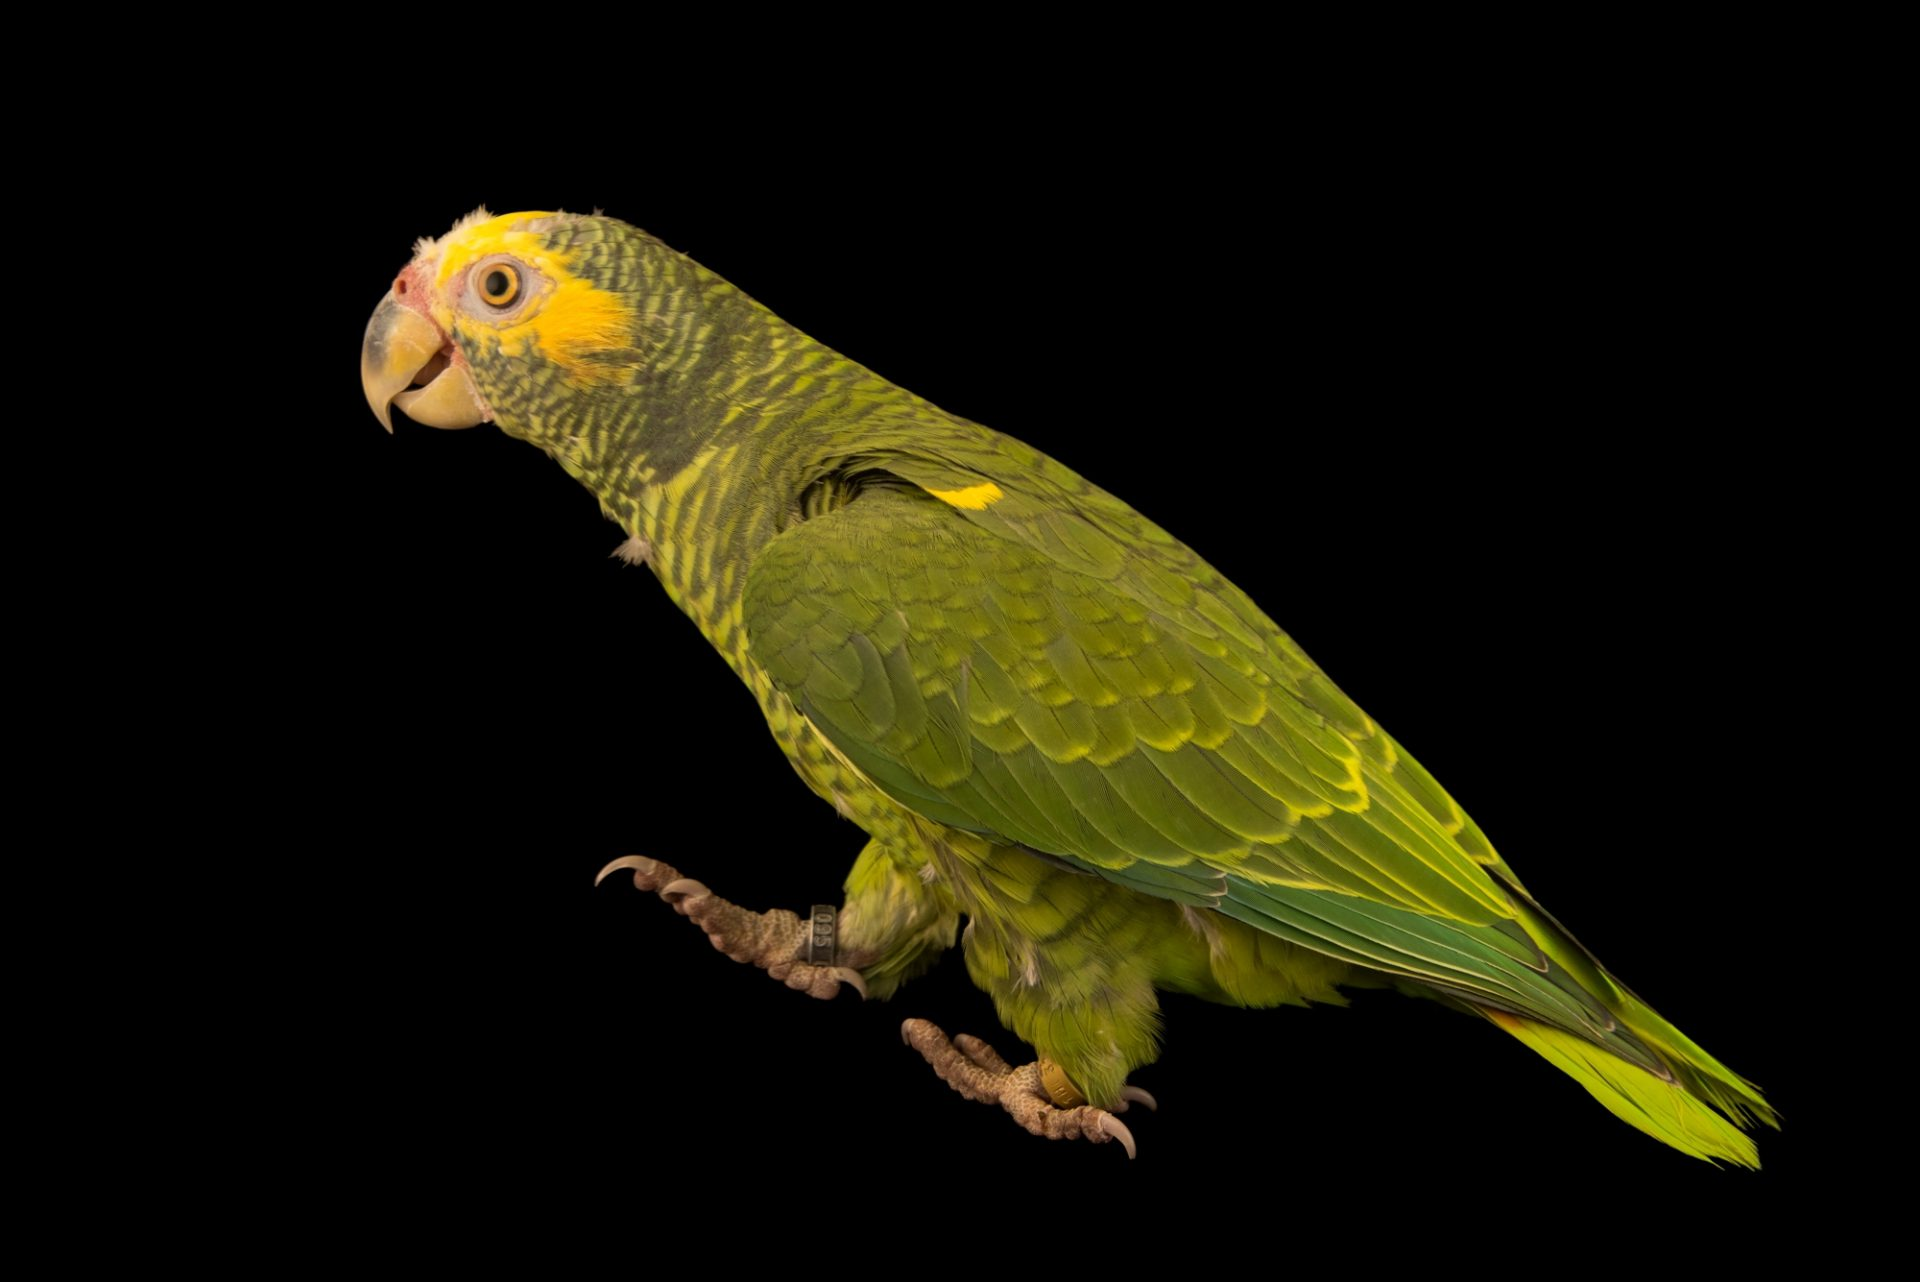 Photo: Yellow faced Amazon, Alipiopsitta xanthops, at Loro Parque Fundacion.